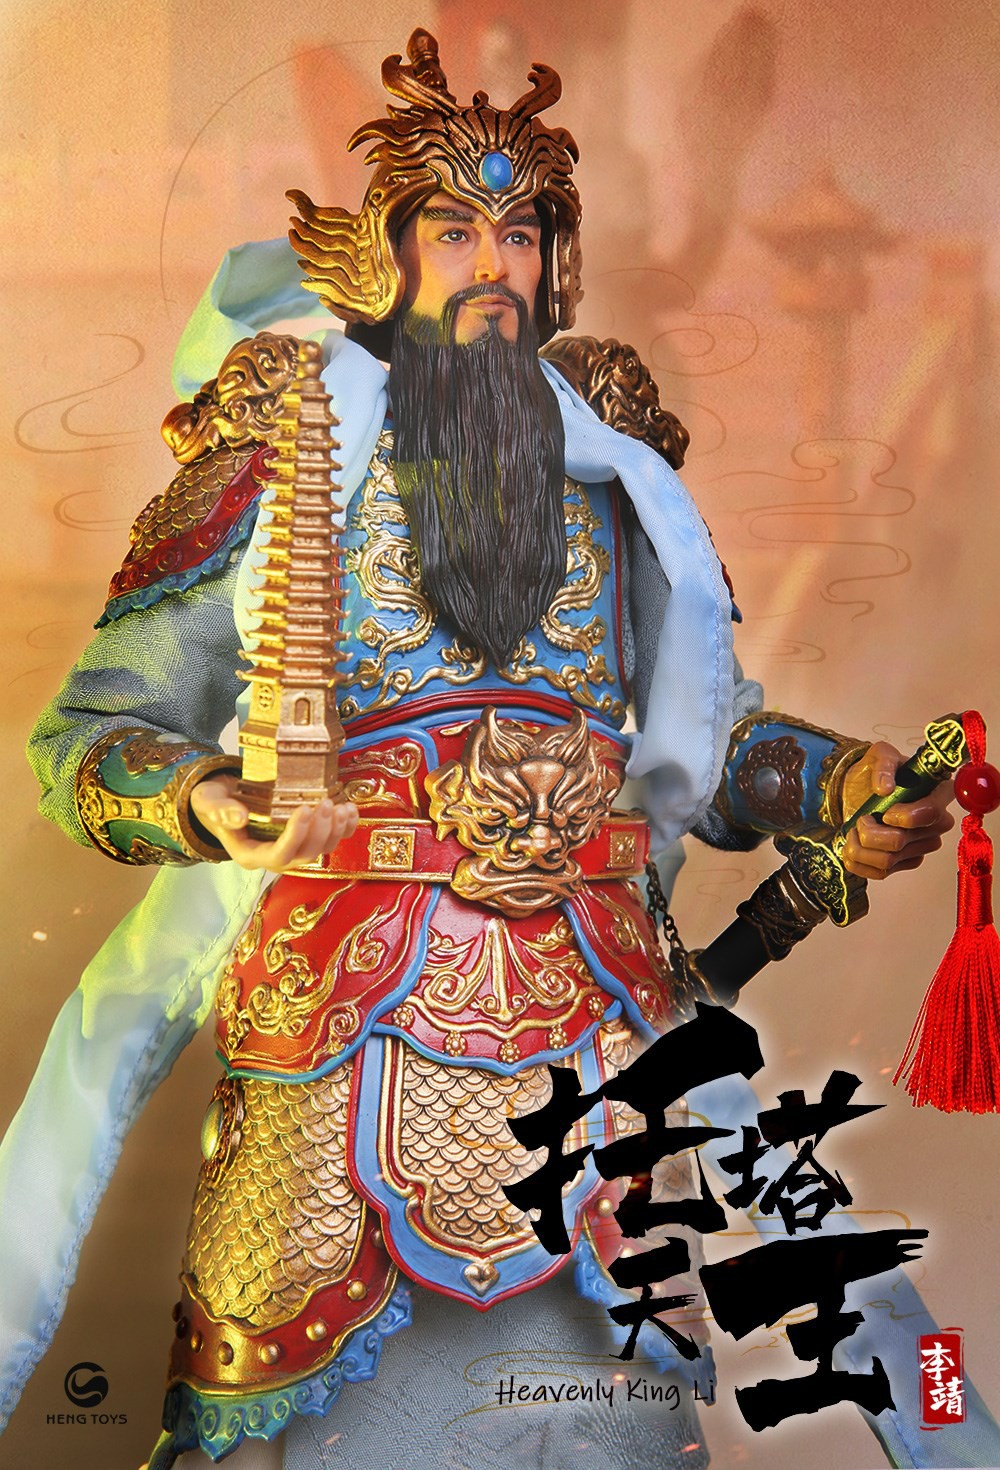 NEW PRODUCT: HENG TOYS: 1/6 Chinese Mythology Taoist Protector God Heavenly King Li, Li Tianwang action figure (PE-005) 14025810